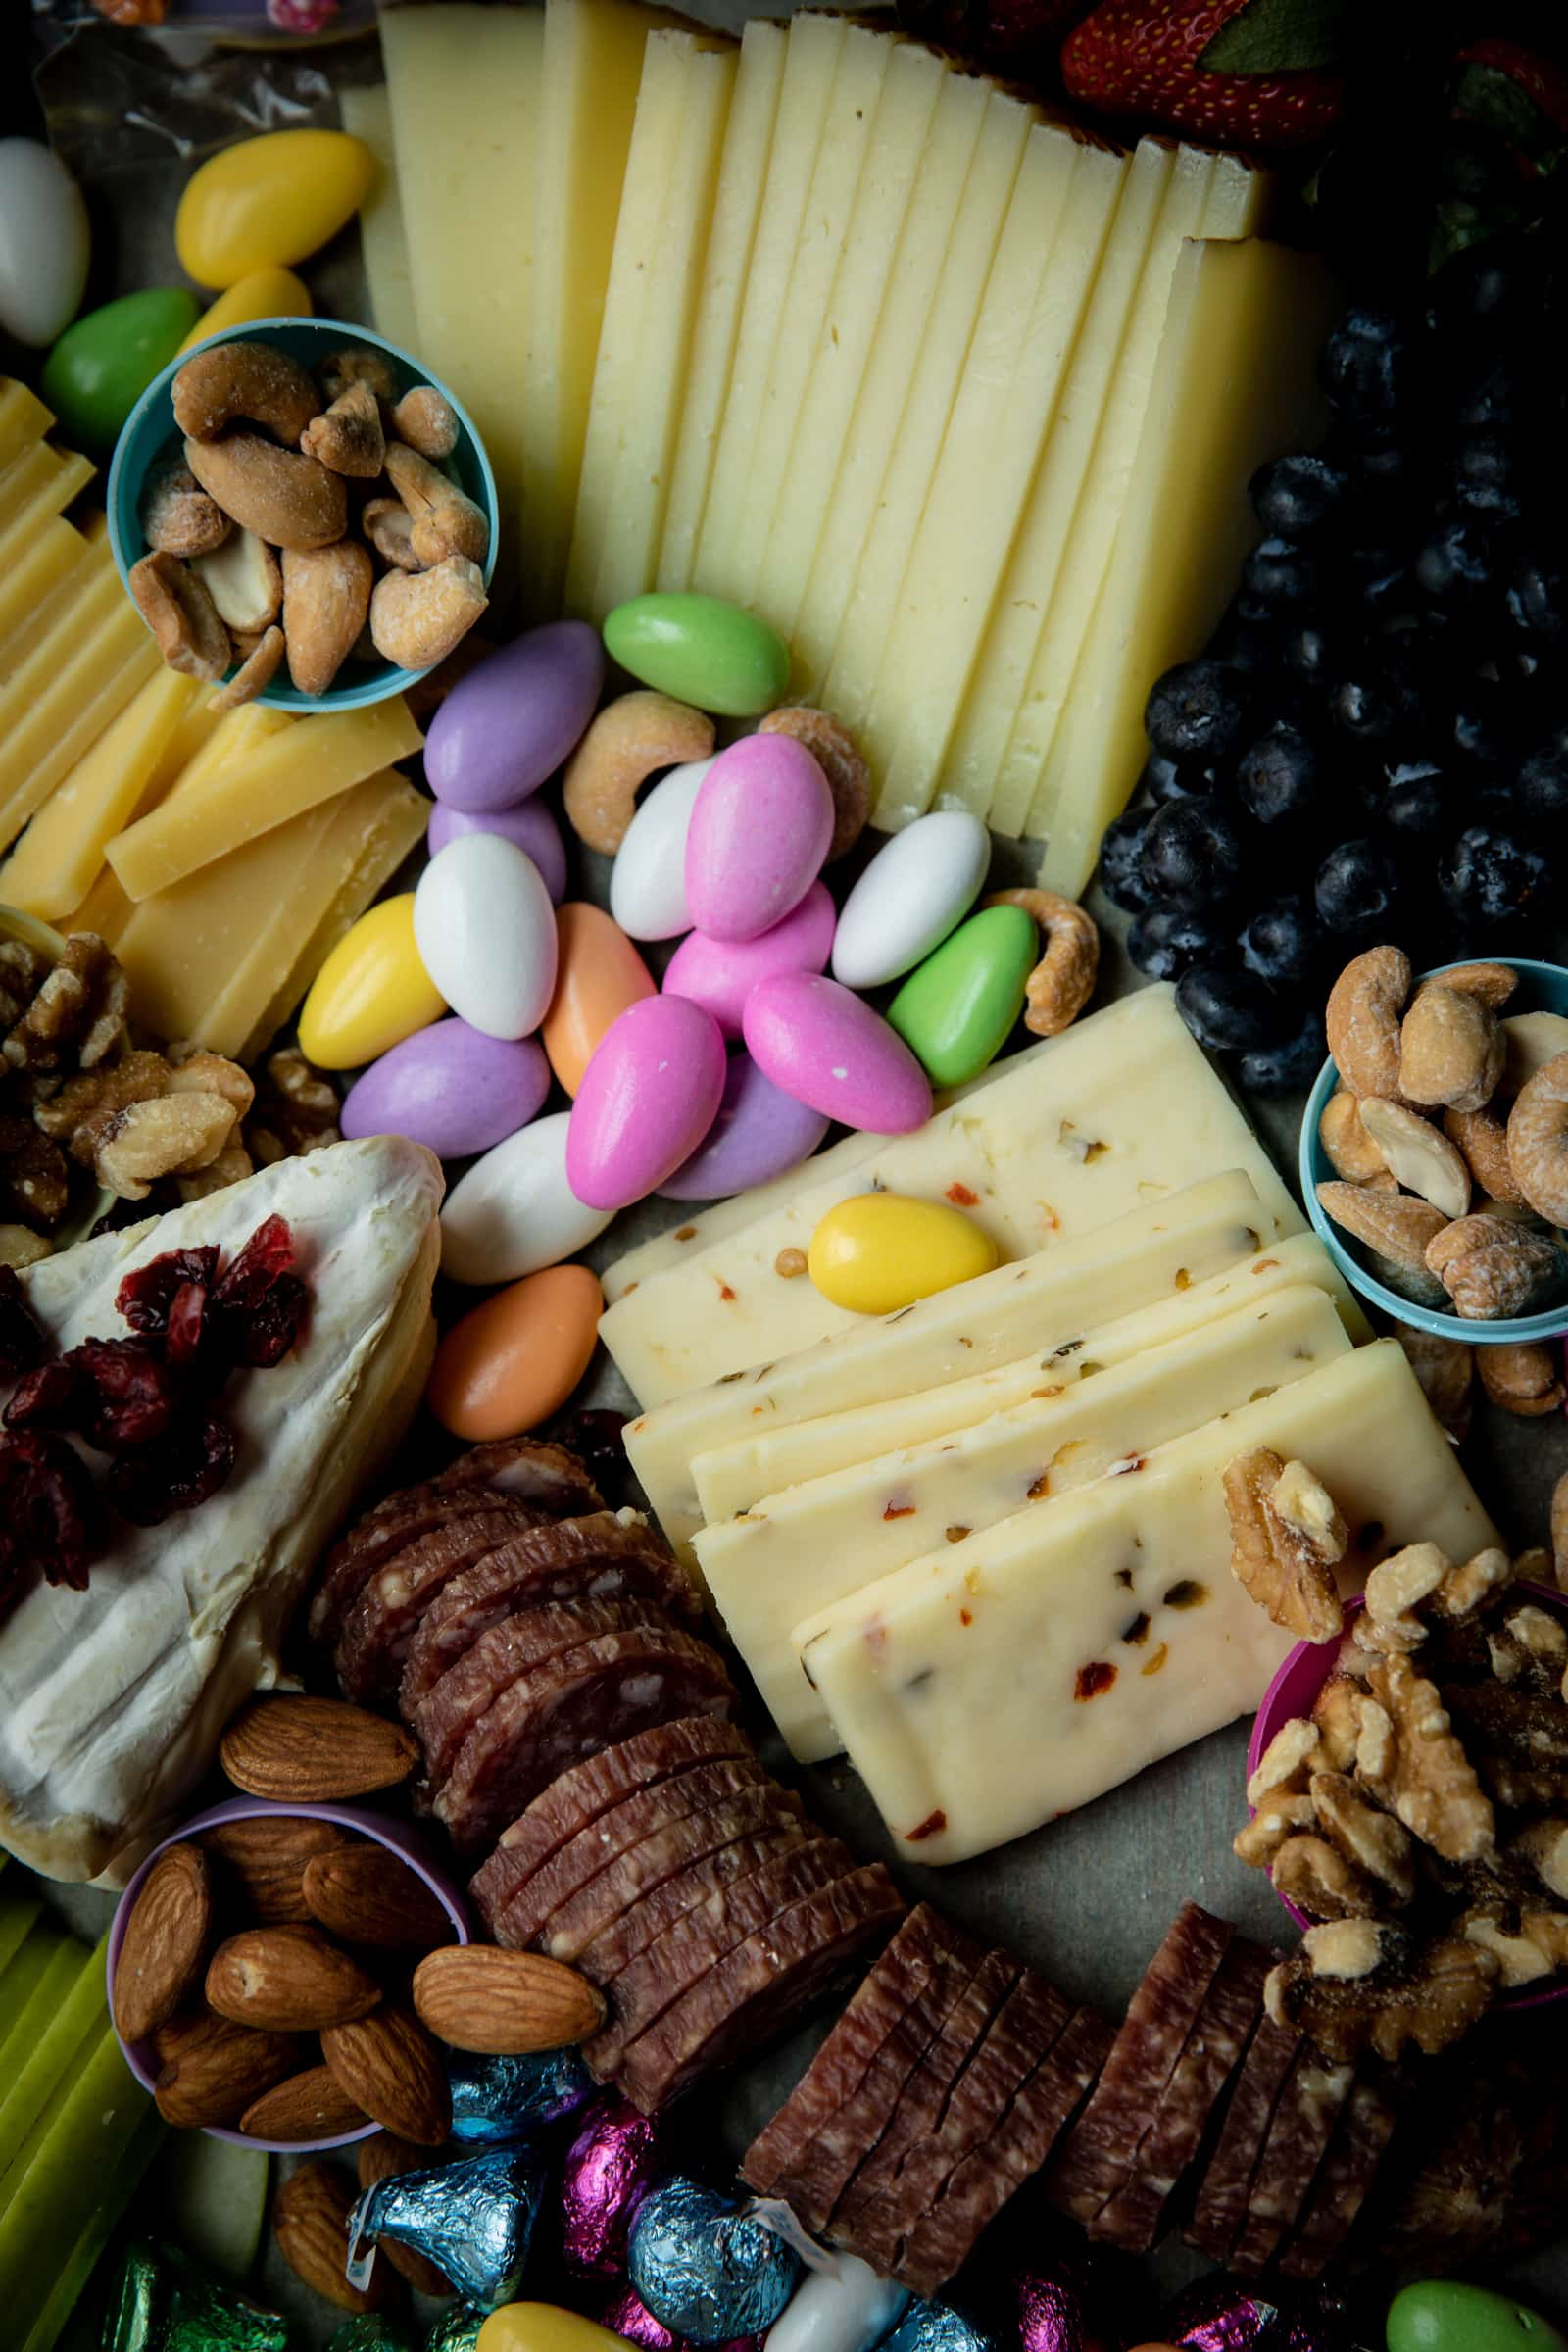 Middle of cheese board with chocolate covered almonds and cheese.